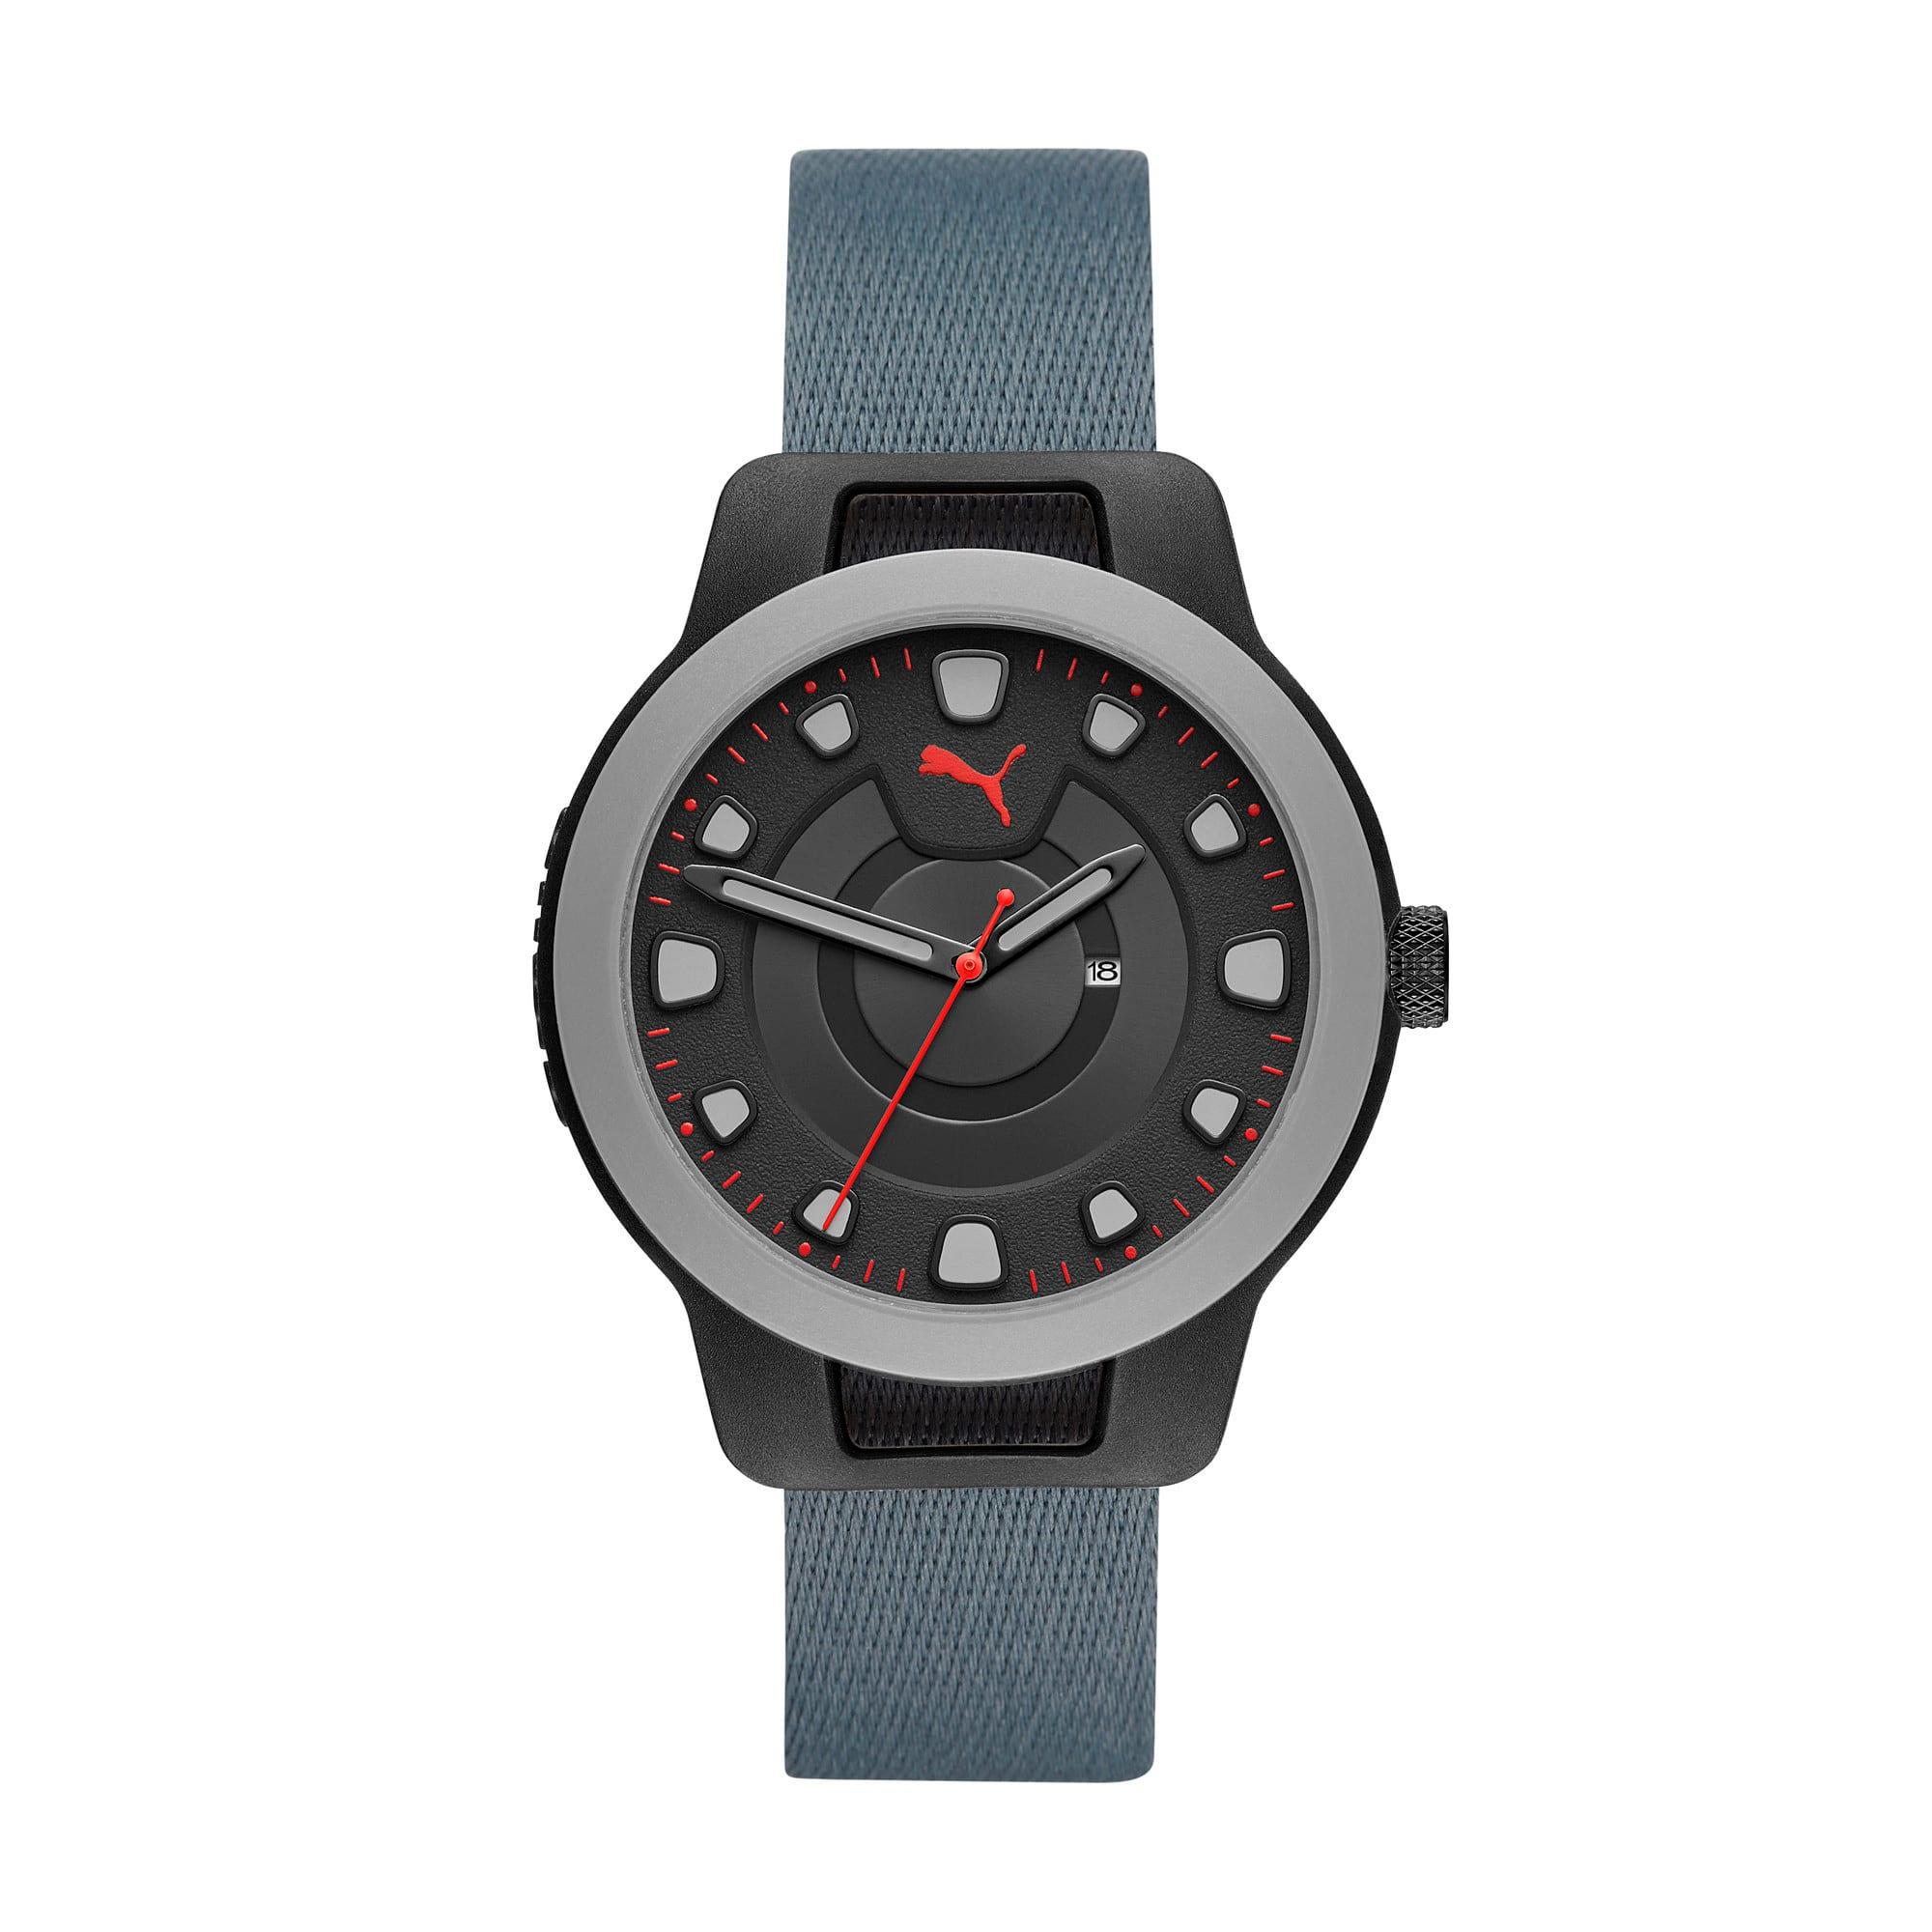 Thumbnail 1 of Reset v1 Reversible Watch, Blue/Red, medium